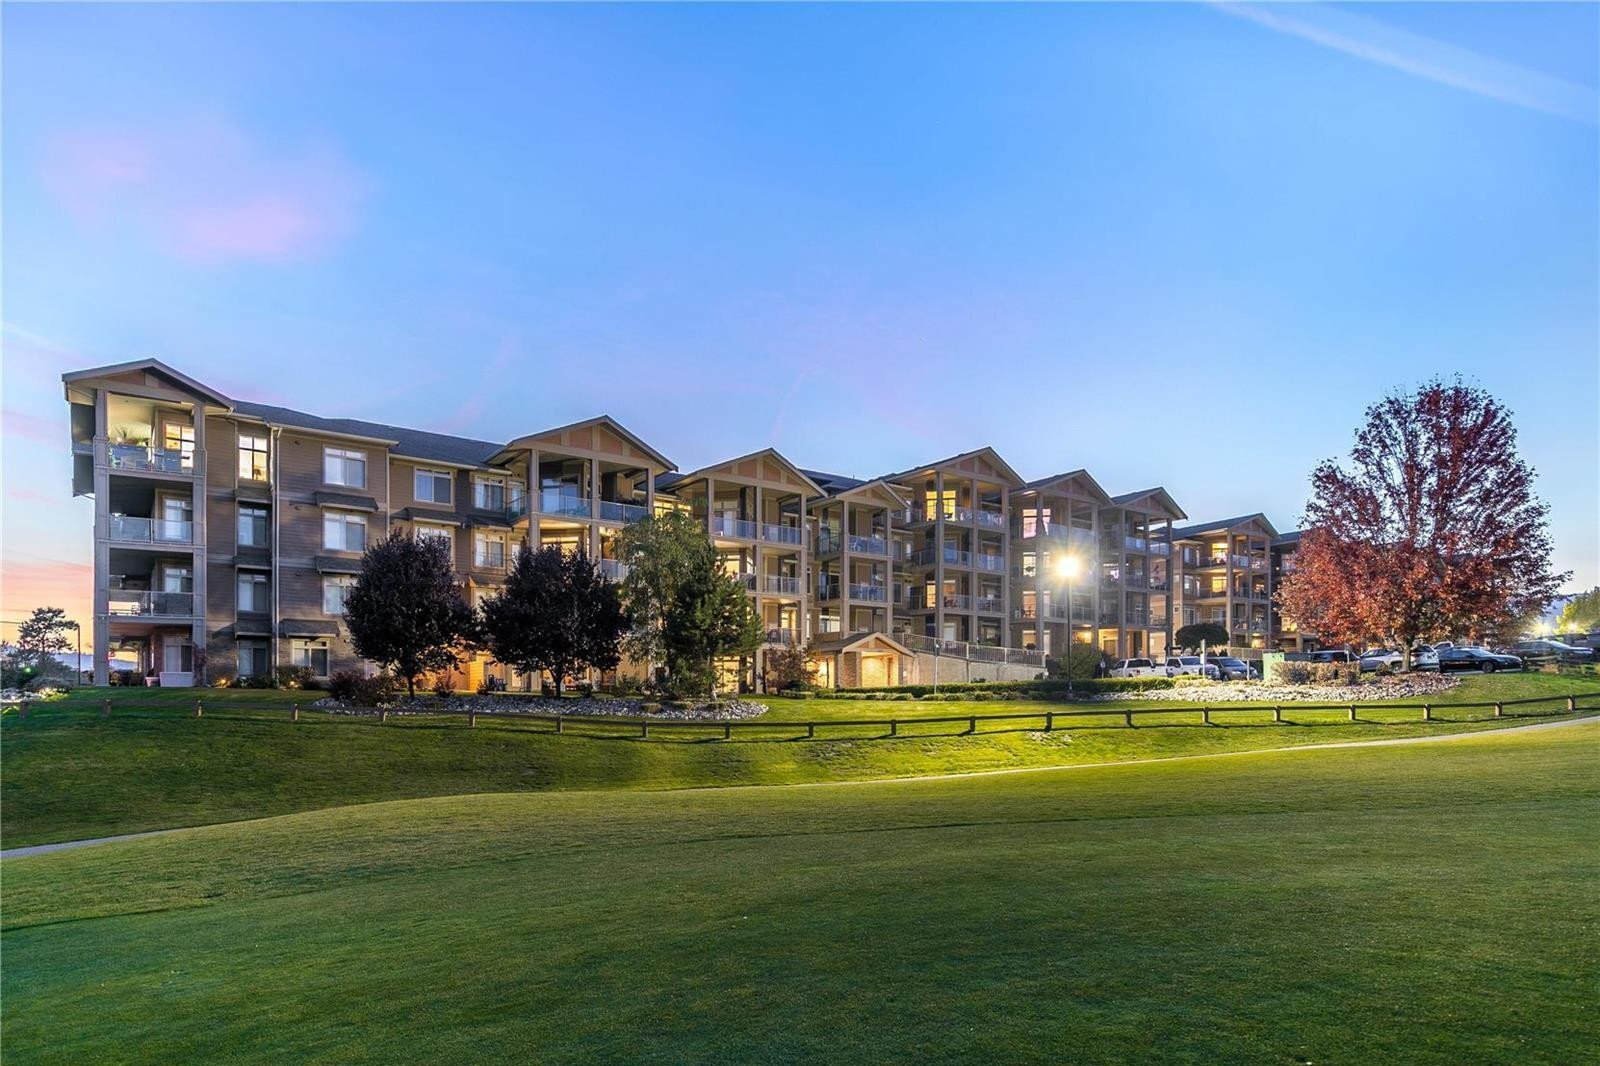 Condo for sale at 3533 Carrington Rd Unit 202 West Kelowna British Columbia - MLS: 10218155